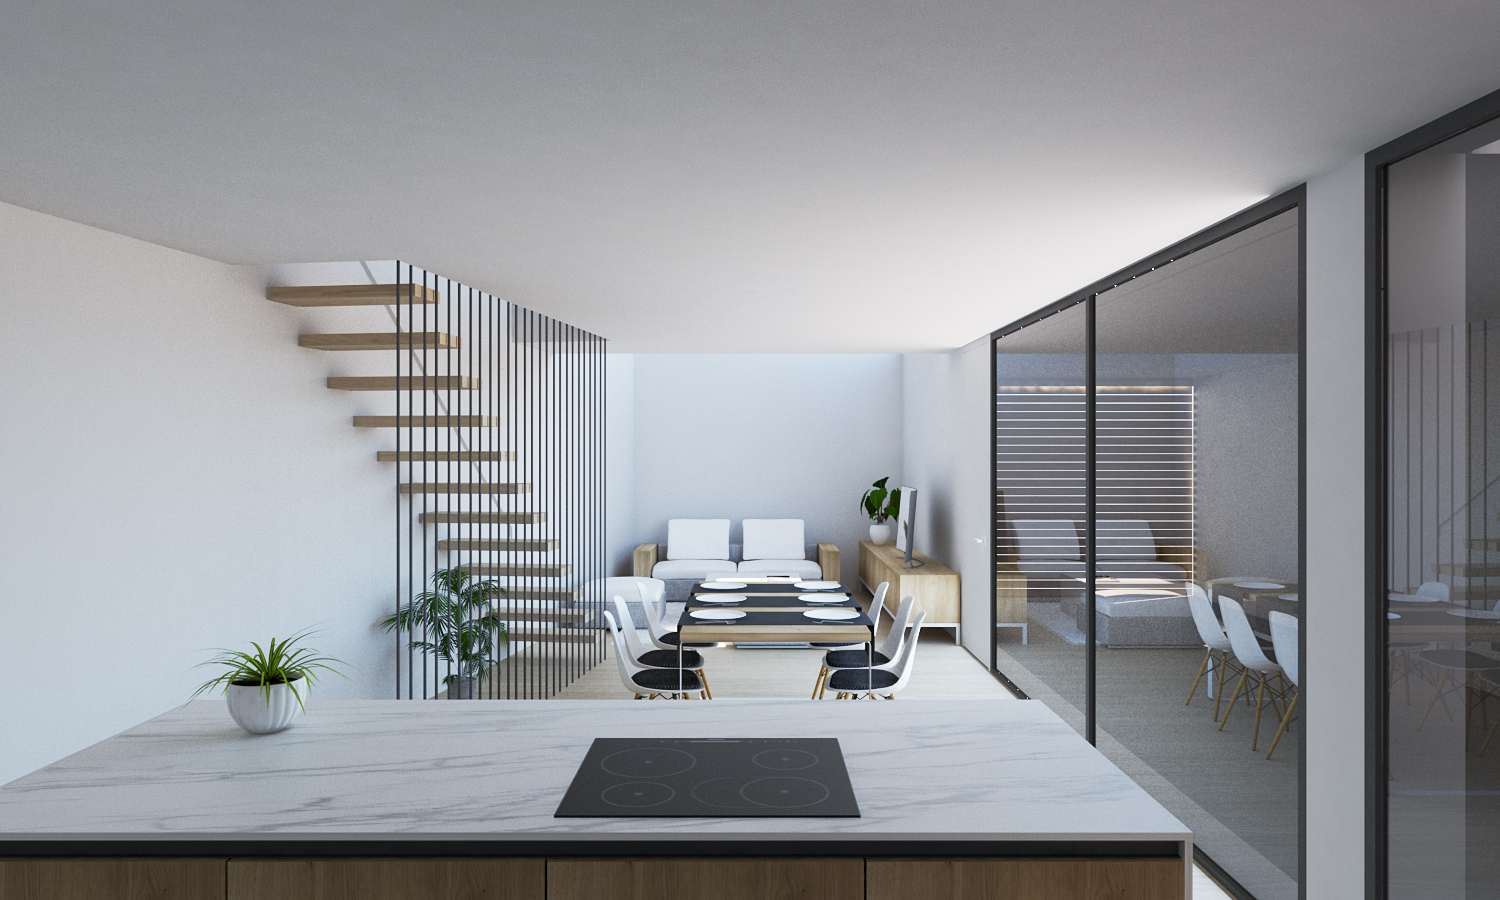 Proyecto Binomio Arquitectura - In&Out